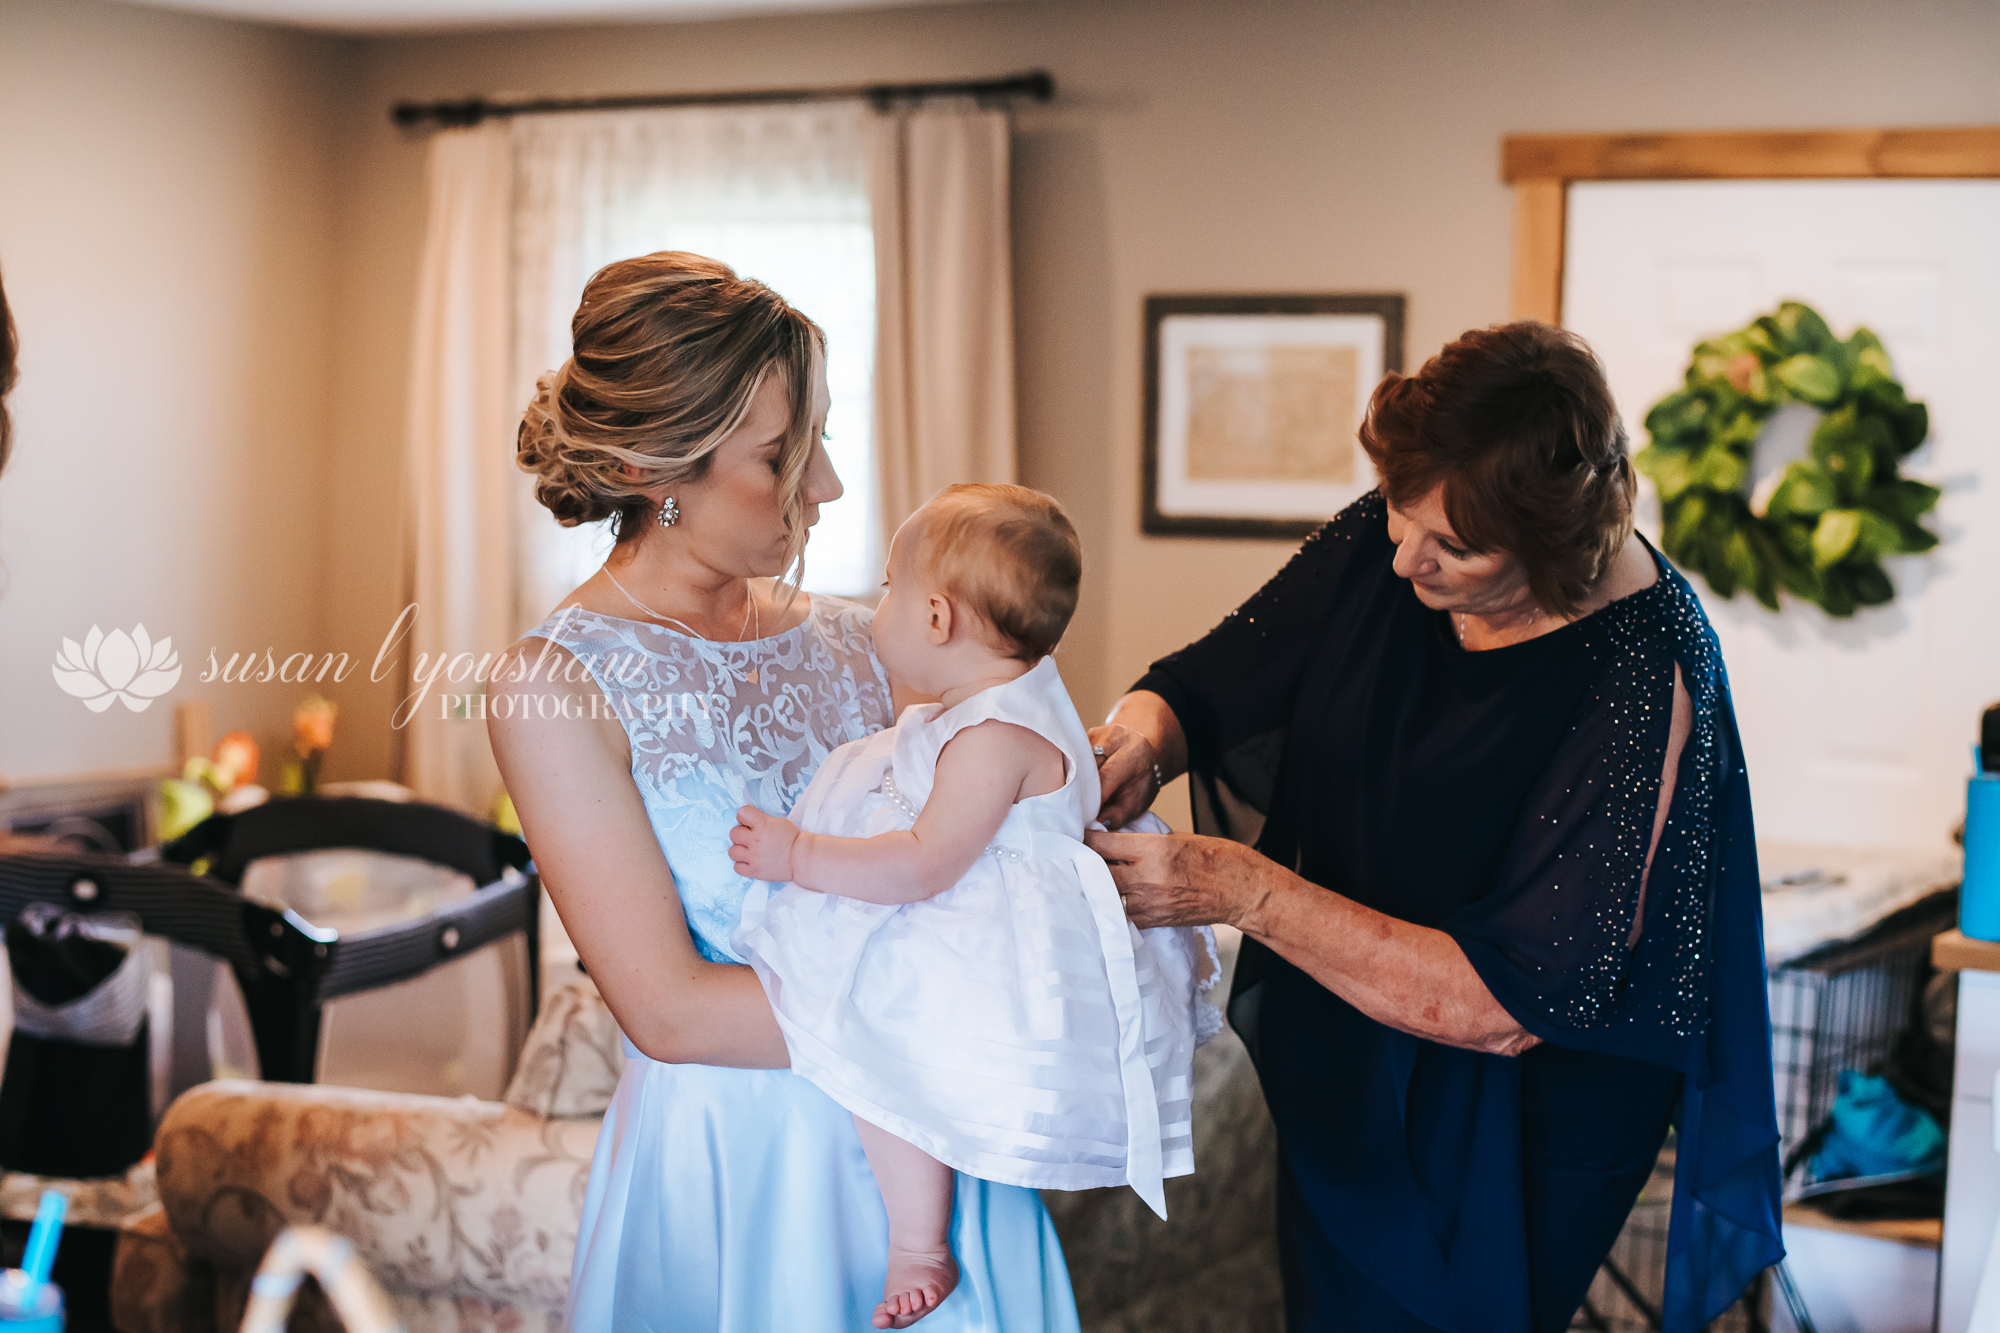 Erin and Jason Wedding Photos 07-06-2019 SLY Photography-42.jpg